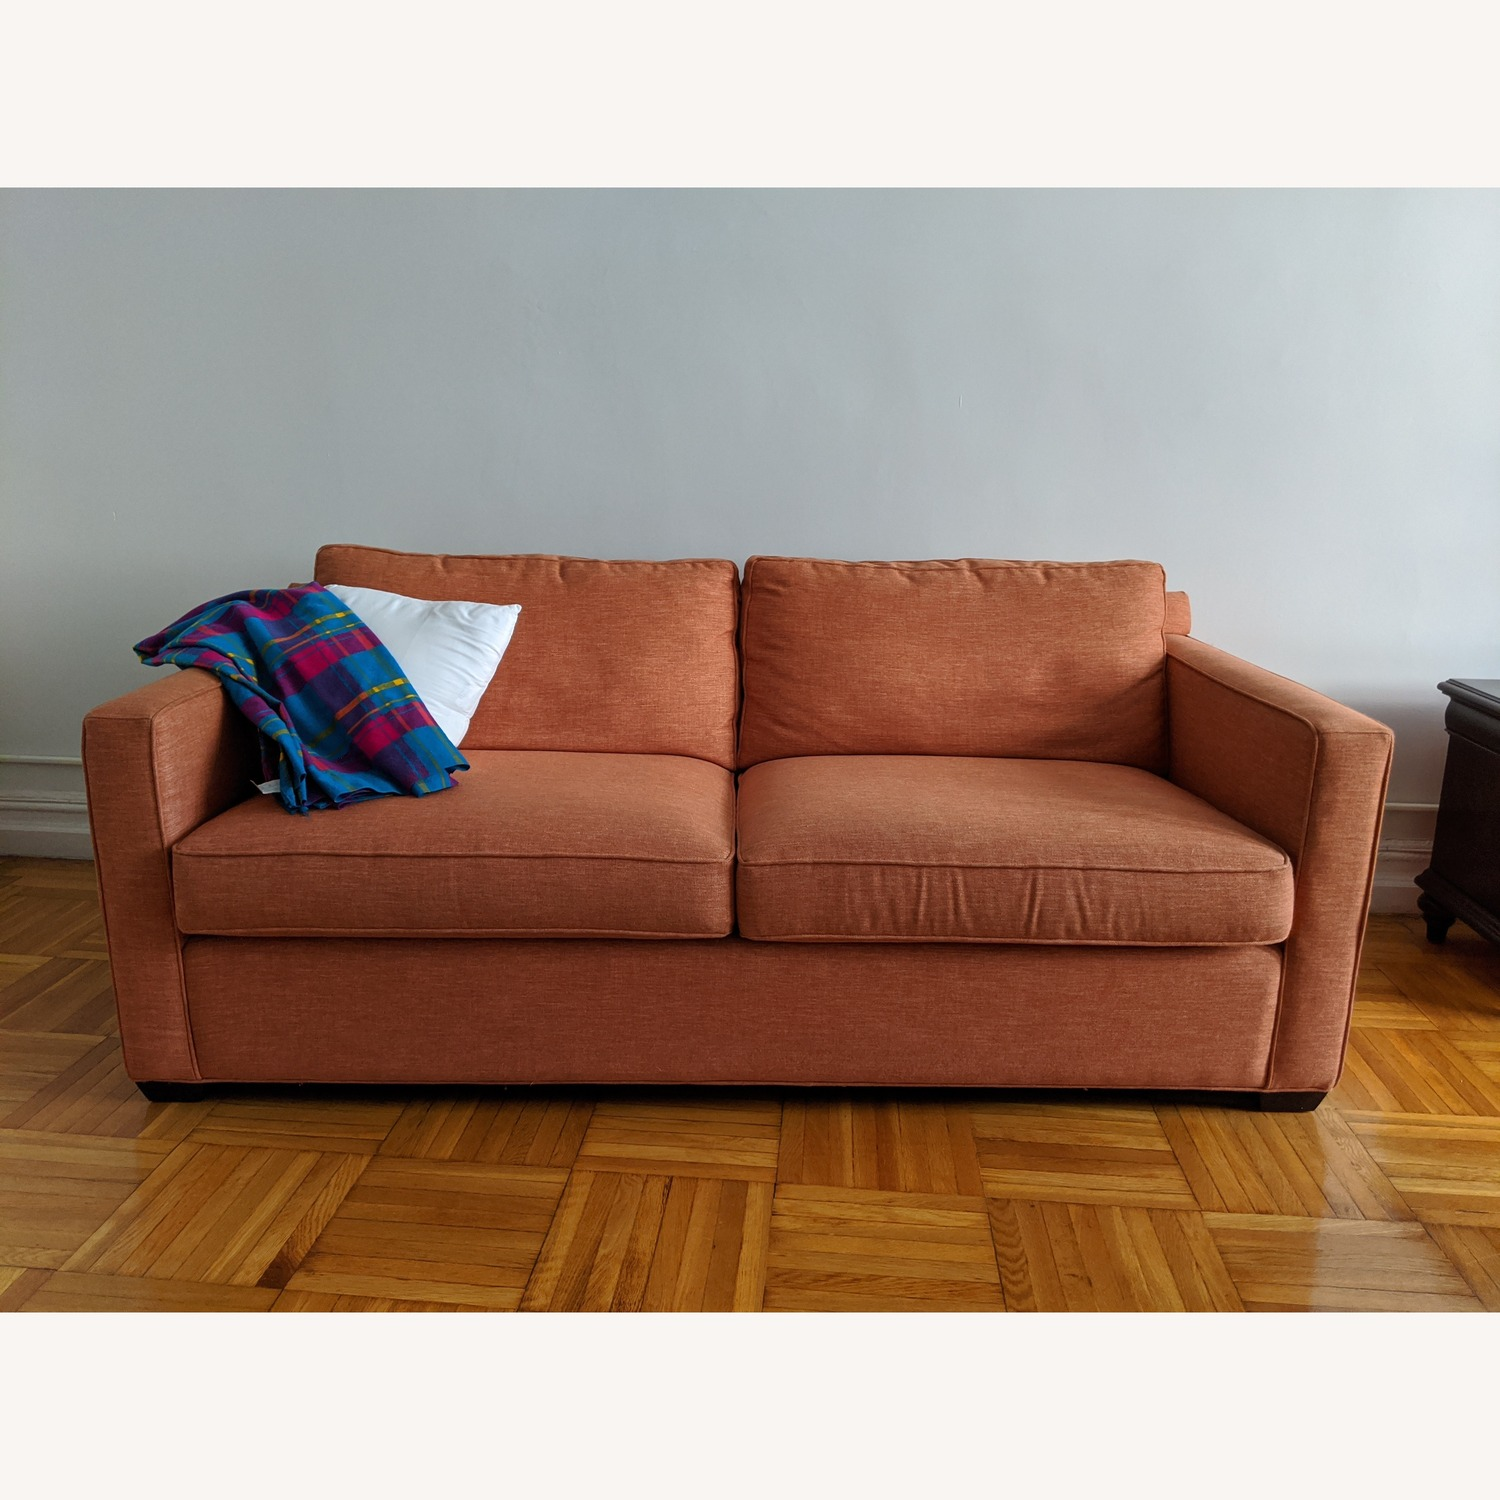 Crate & Barrel Davis Sofa - image-0